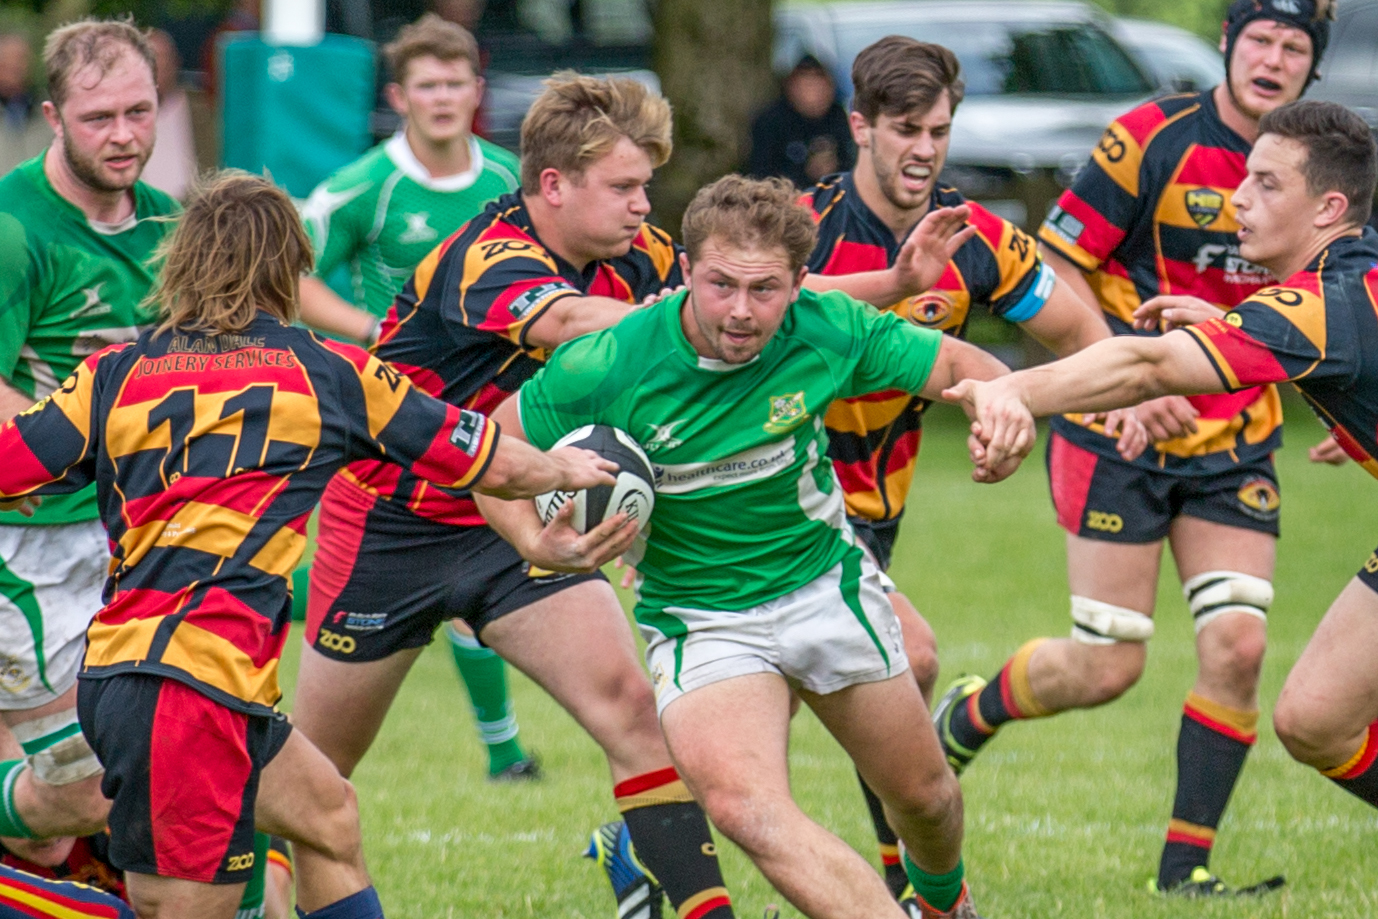 Josh Prell scored the first try for Wharfedale Foresters. Picture: Ro Burridge